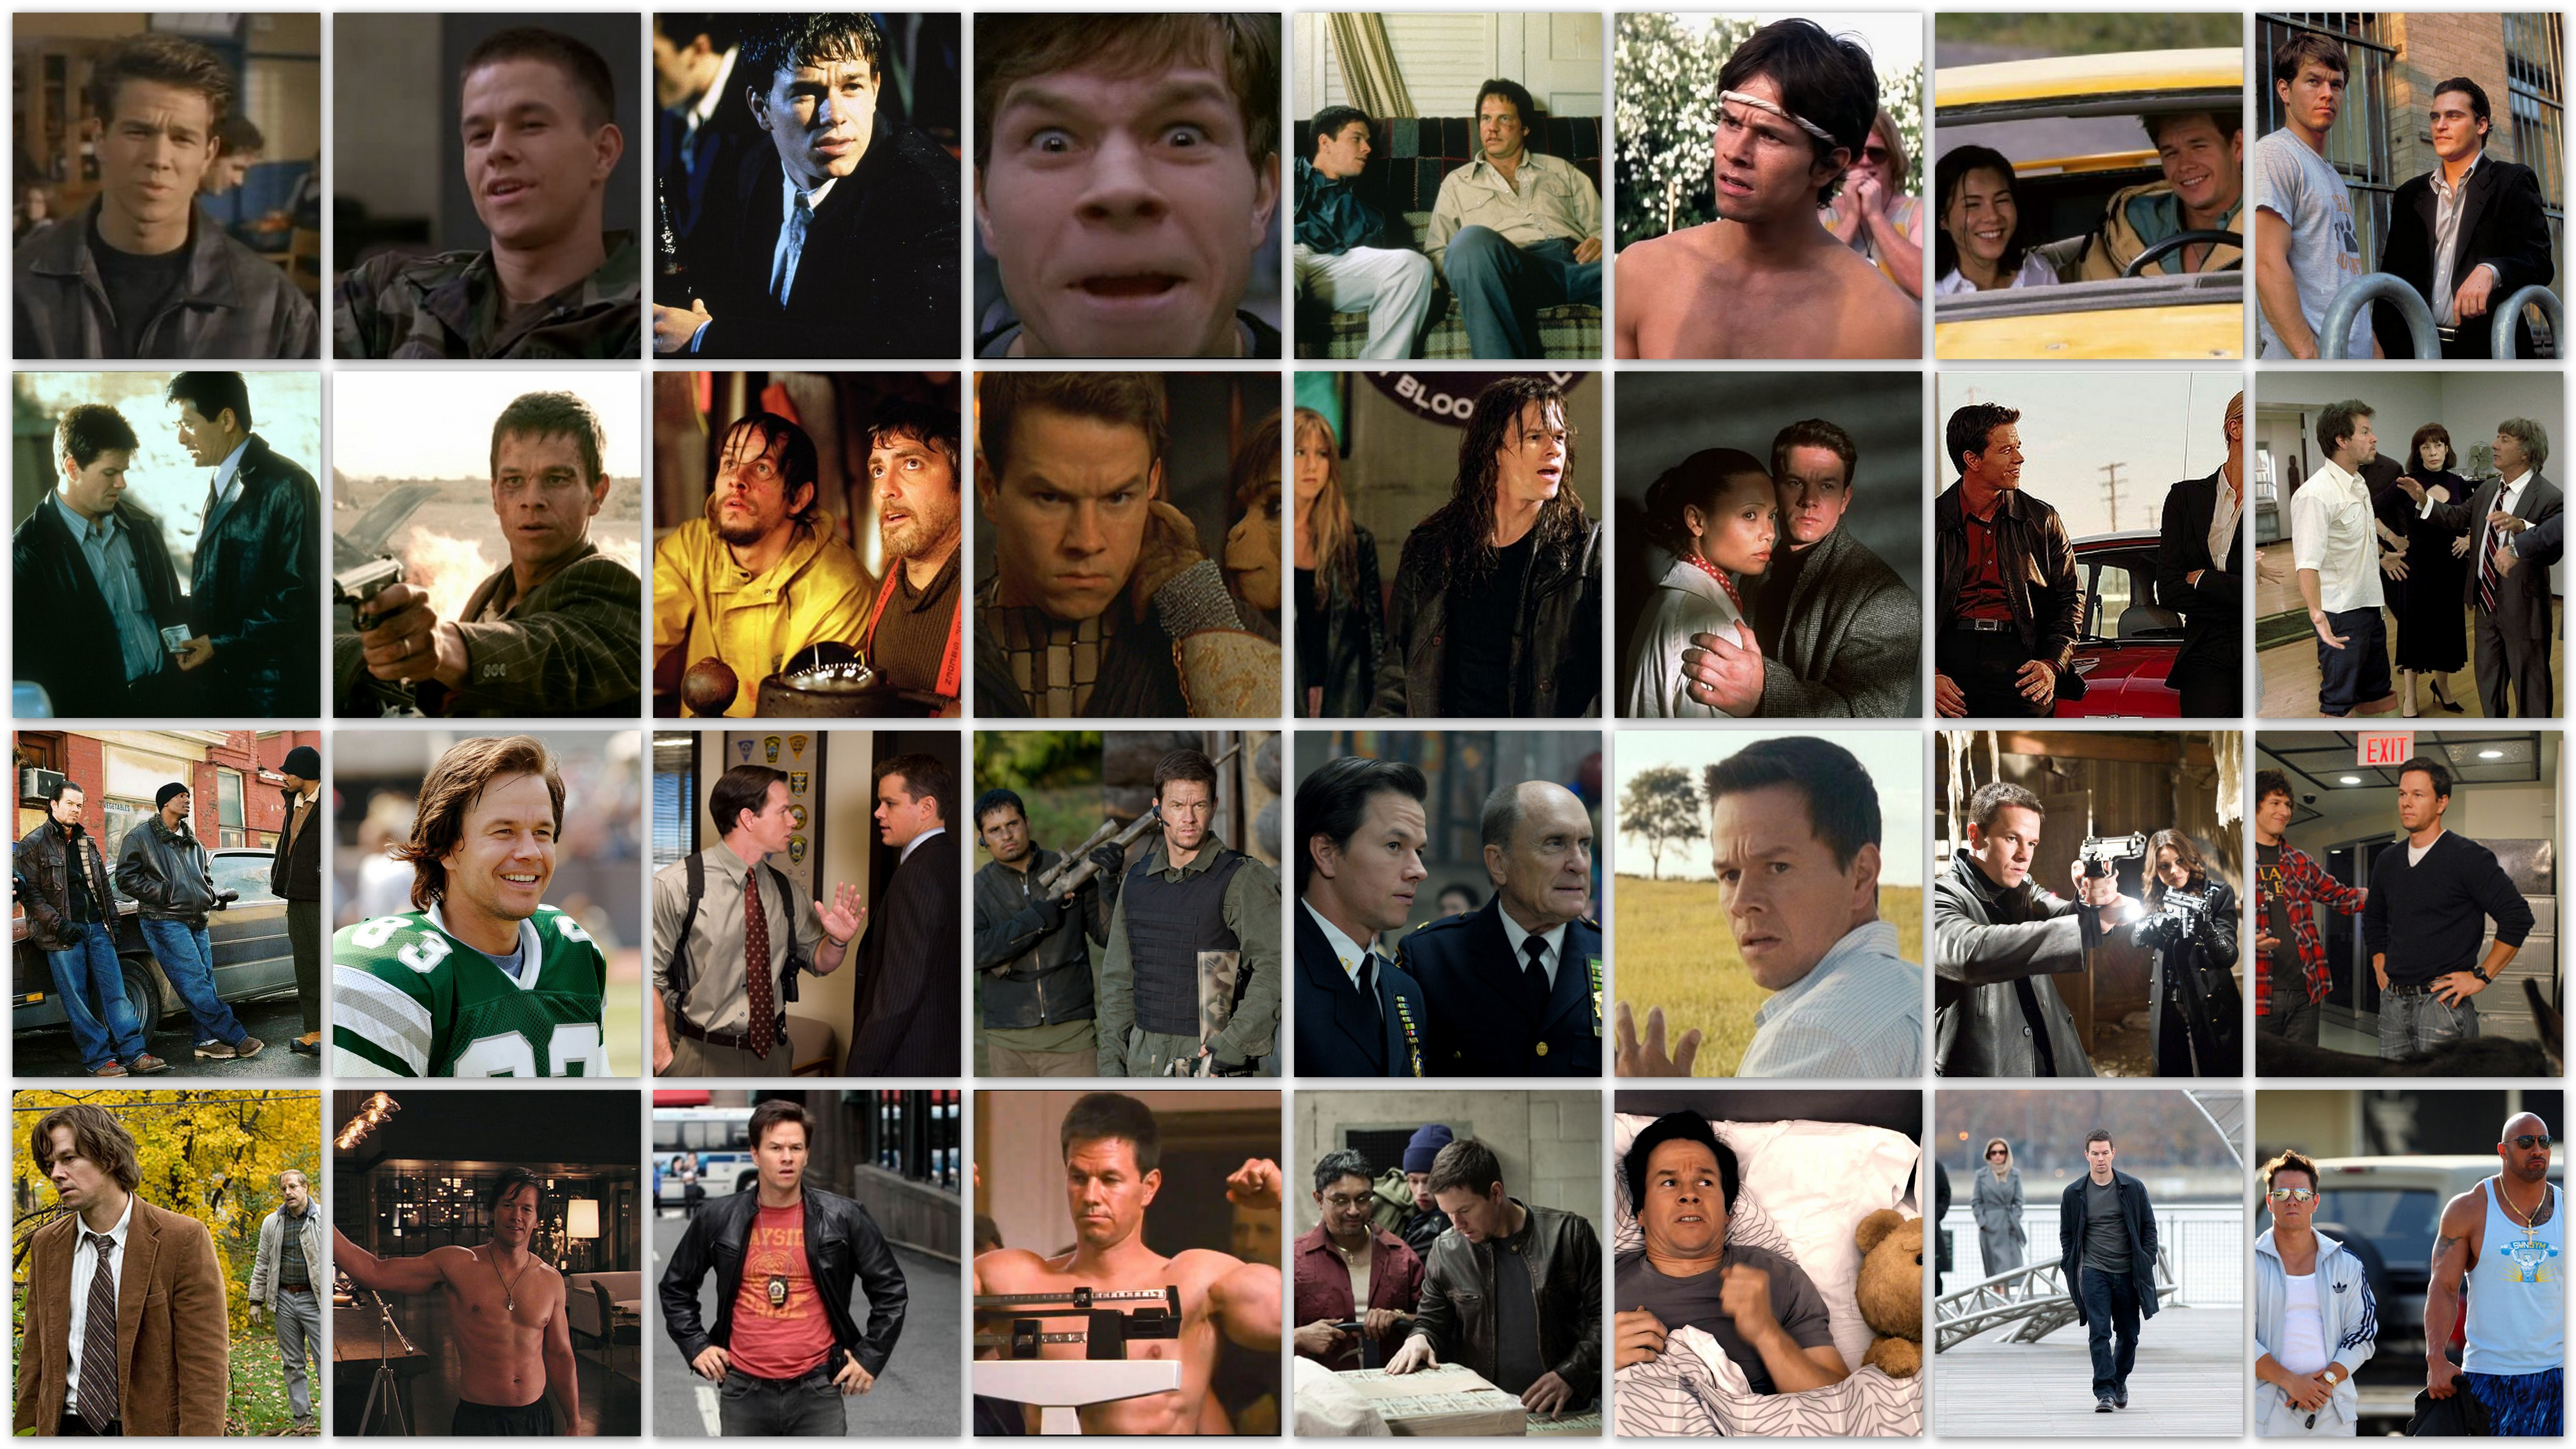 overview roles Mark Wahlberg movies